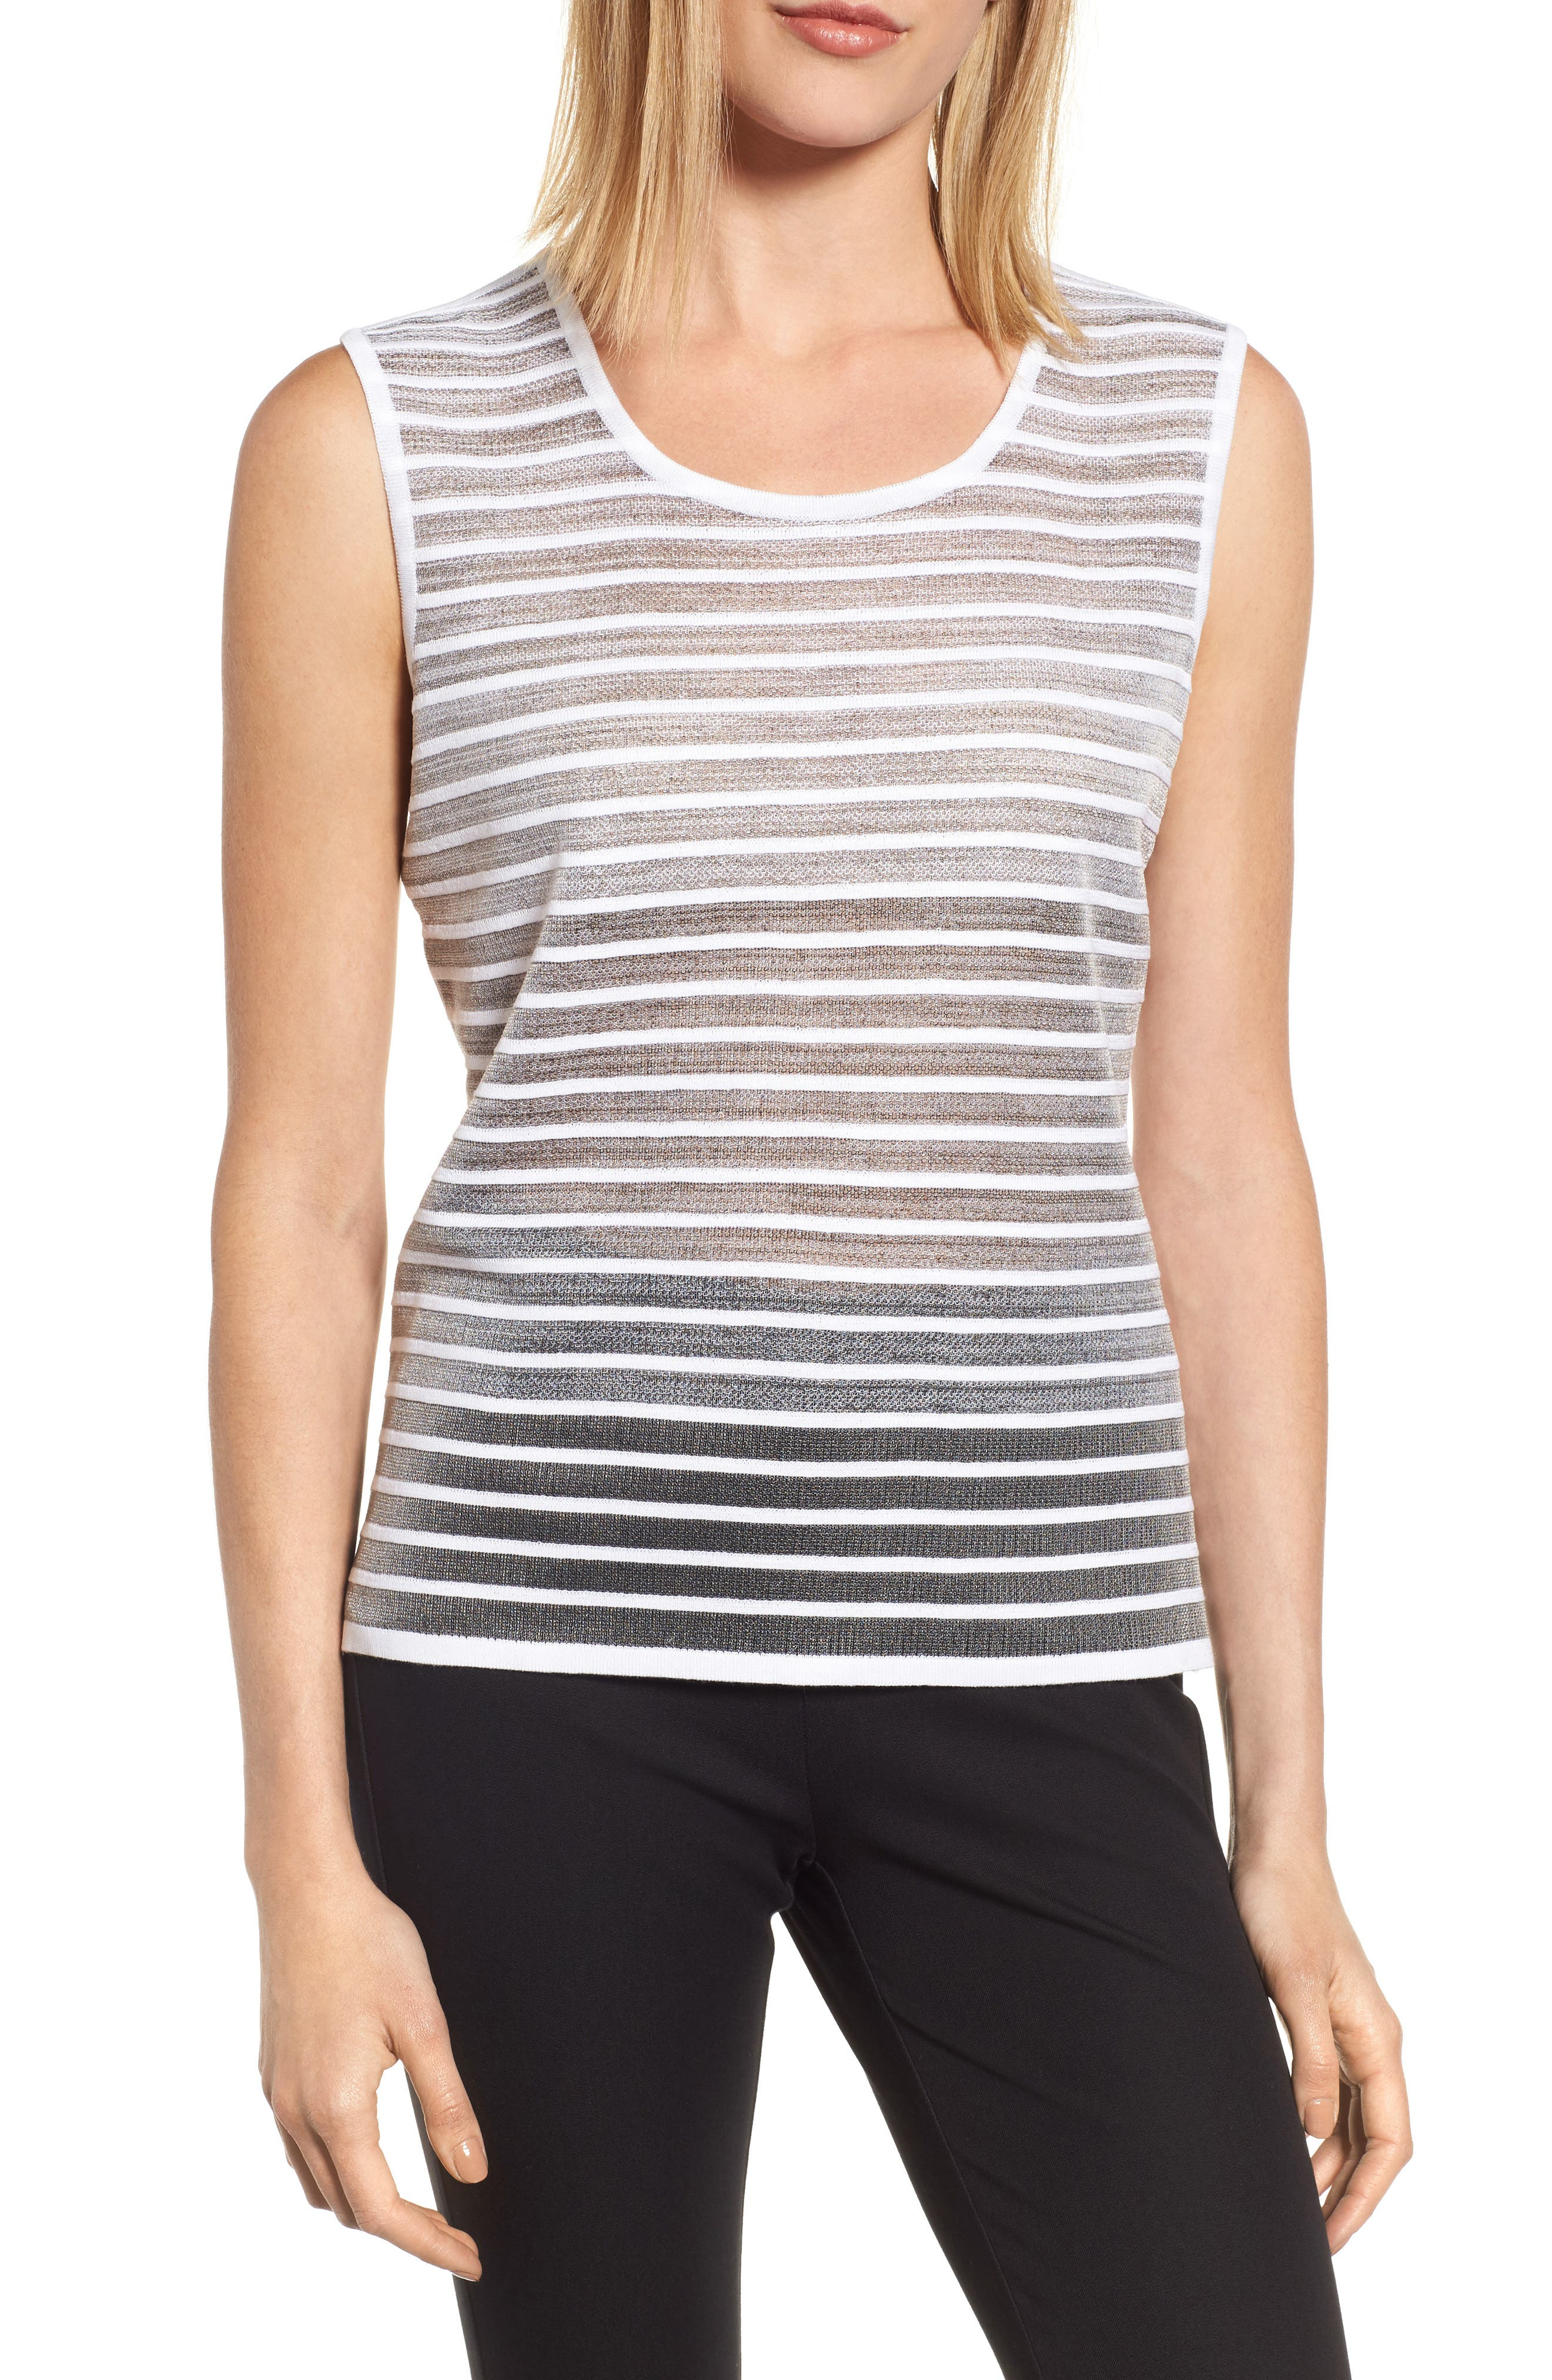 Alternate Image 1 Selected - Ming Wang Reversible Knit Tank